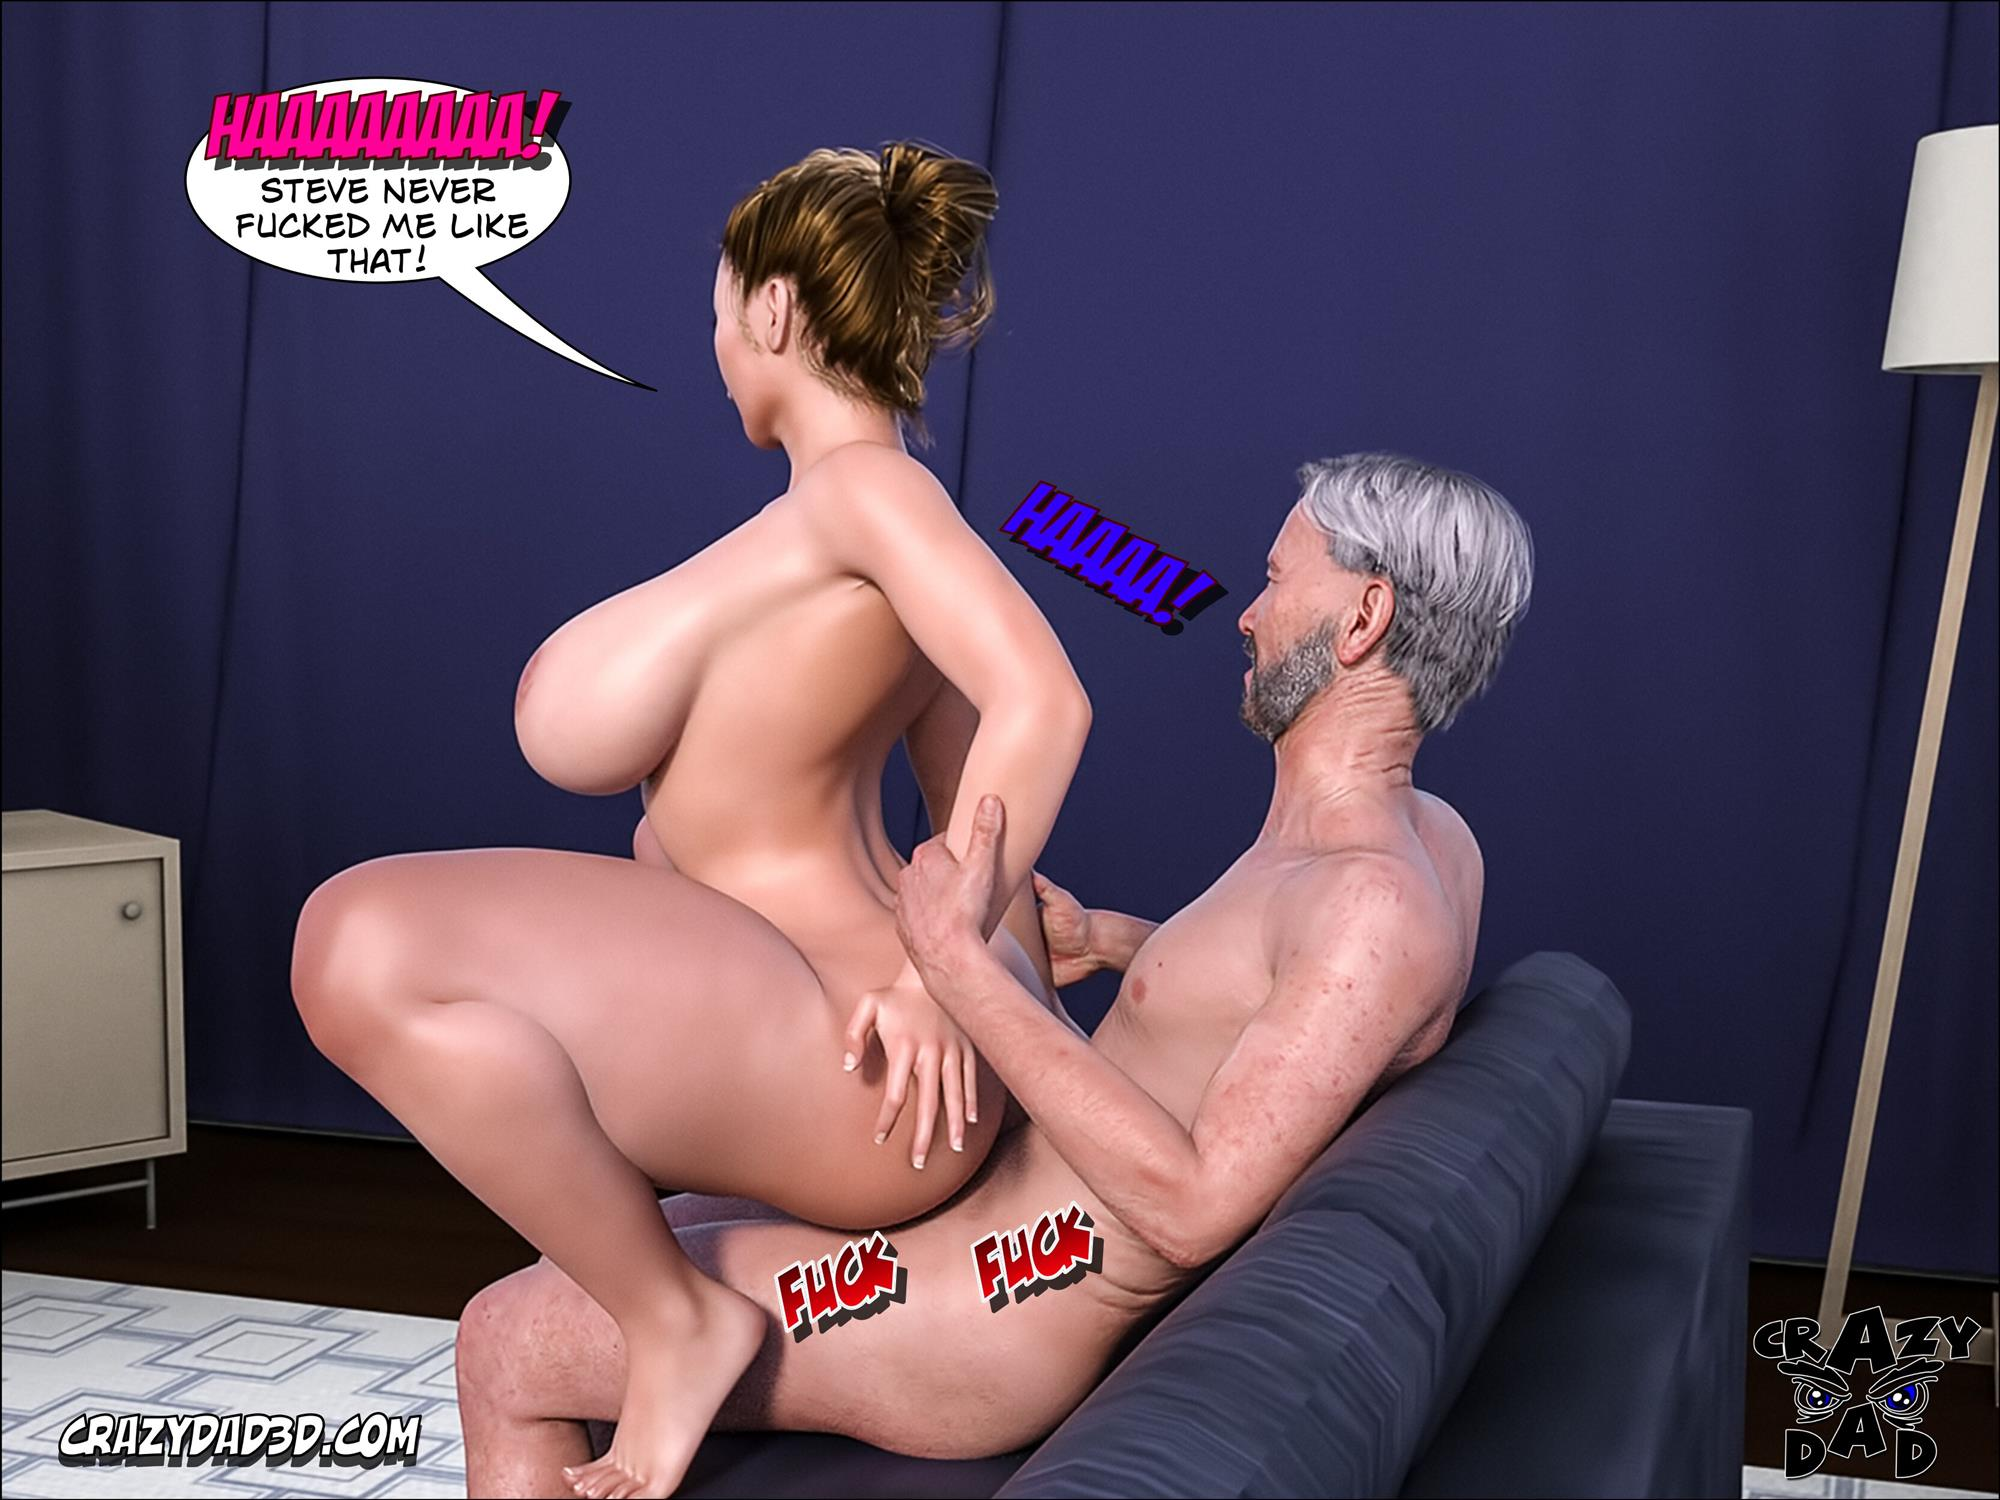 Father-in-Law at Home 10 [Crazy Dad 3D] - Foto 40